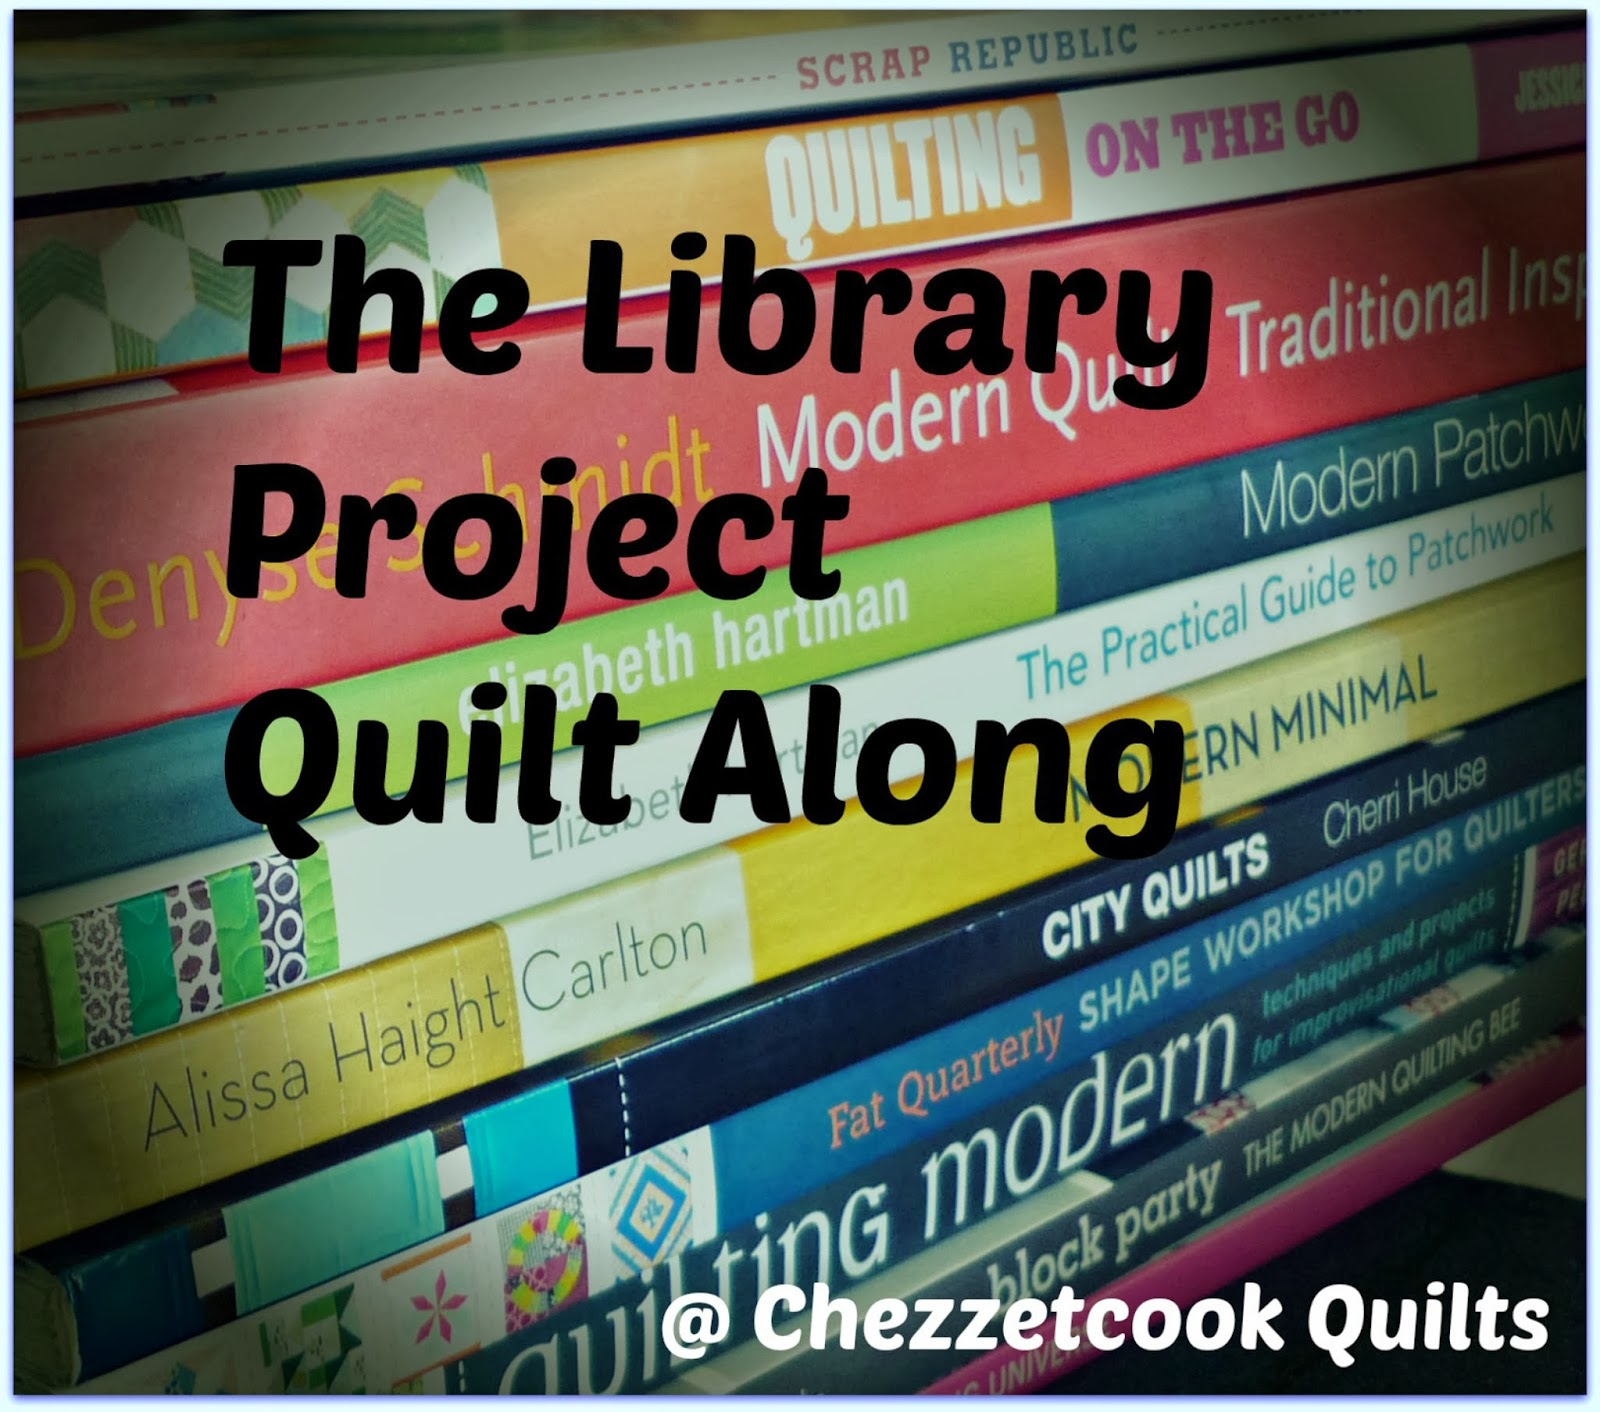 http://chezzetcookmodernquilts.blogspot.ca/p/the-library-project.html